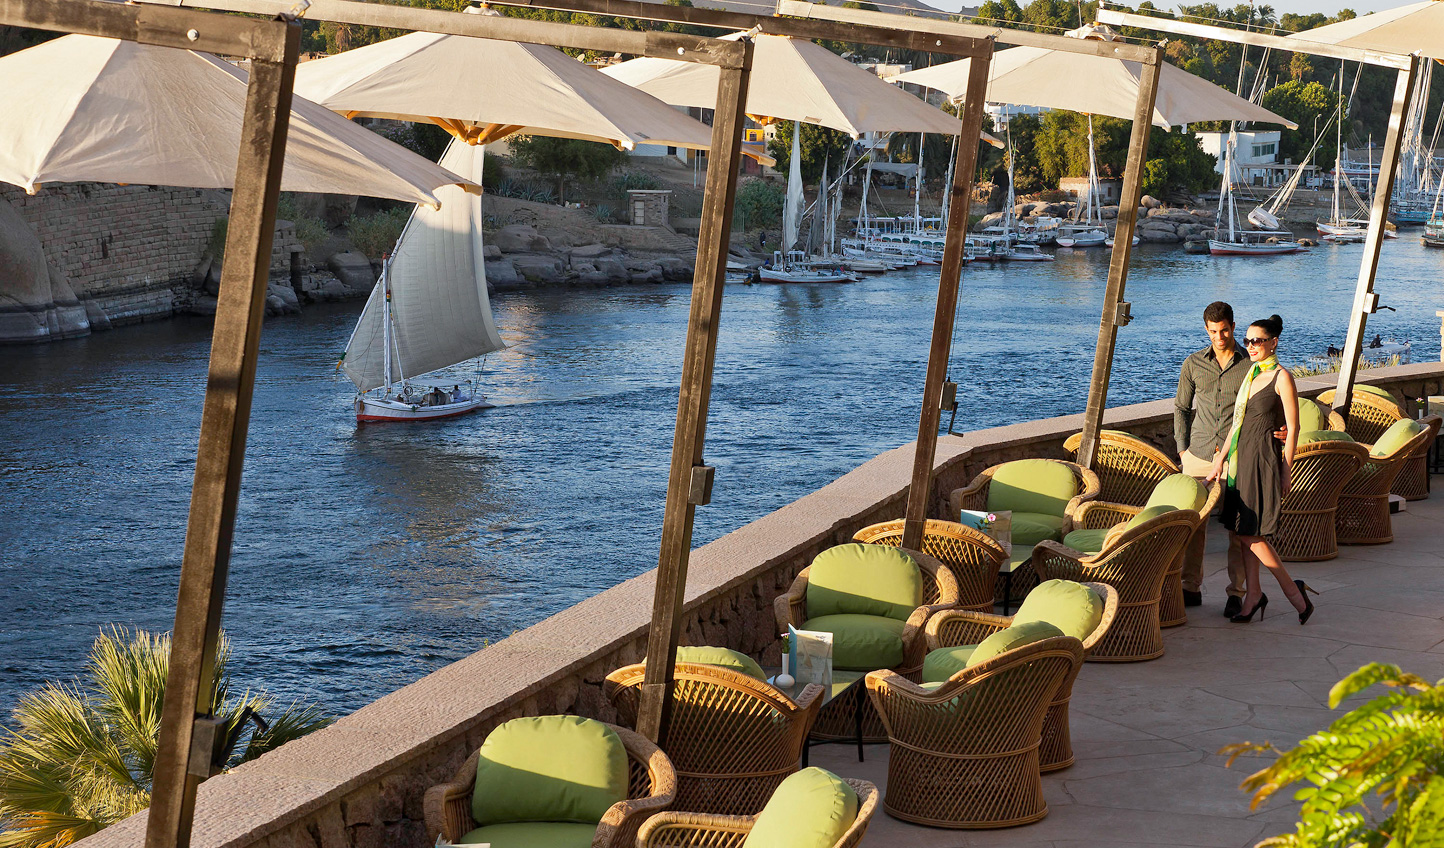 Spend an afternoon down at the Promenade watching life on the Nile go by